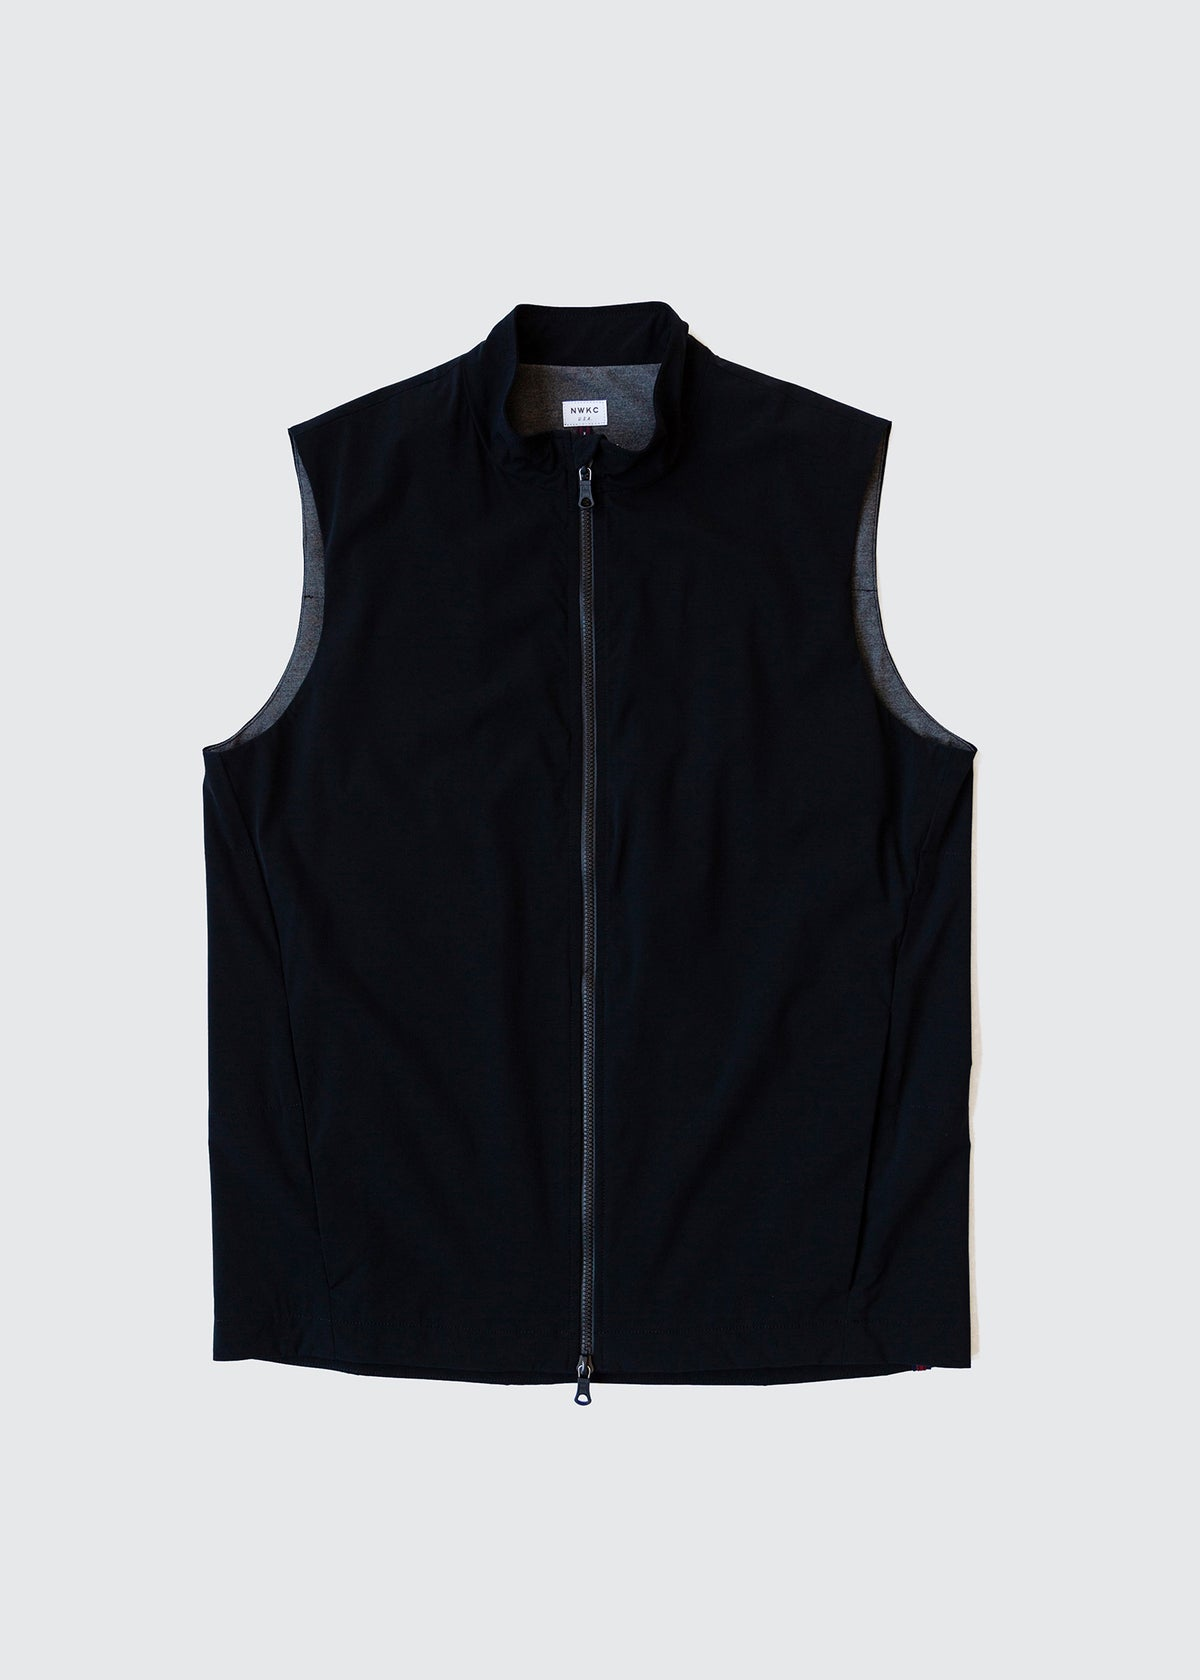 303 - QUILTED COLLAR VEST - BLACK